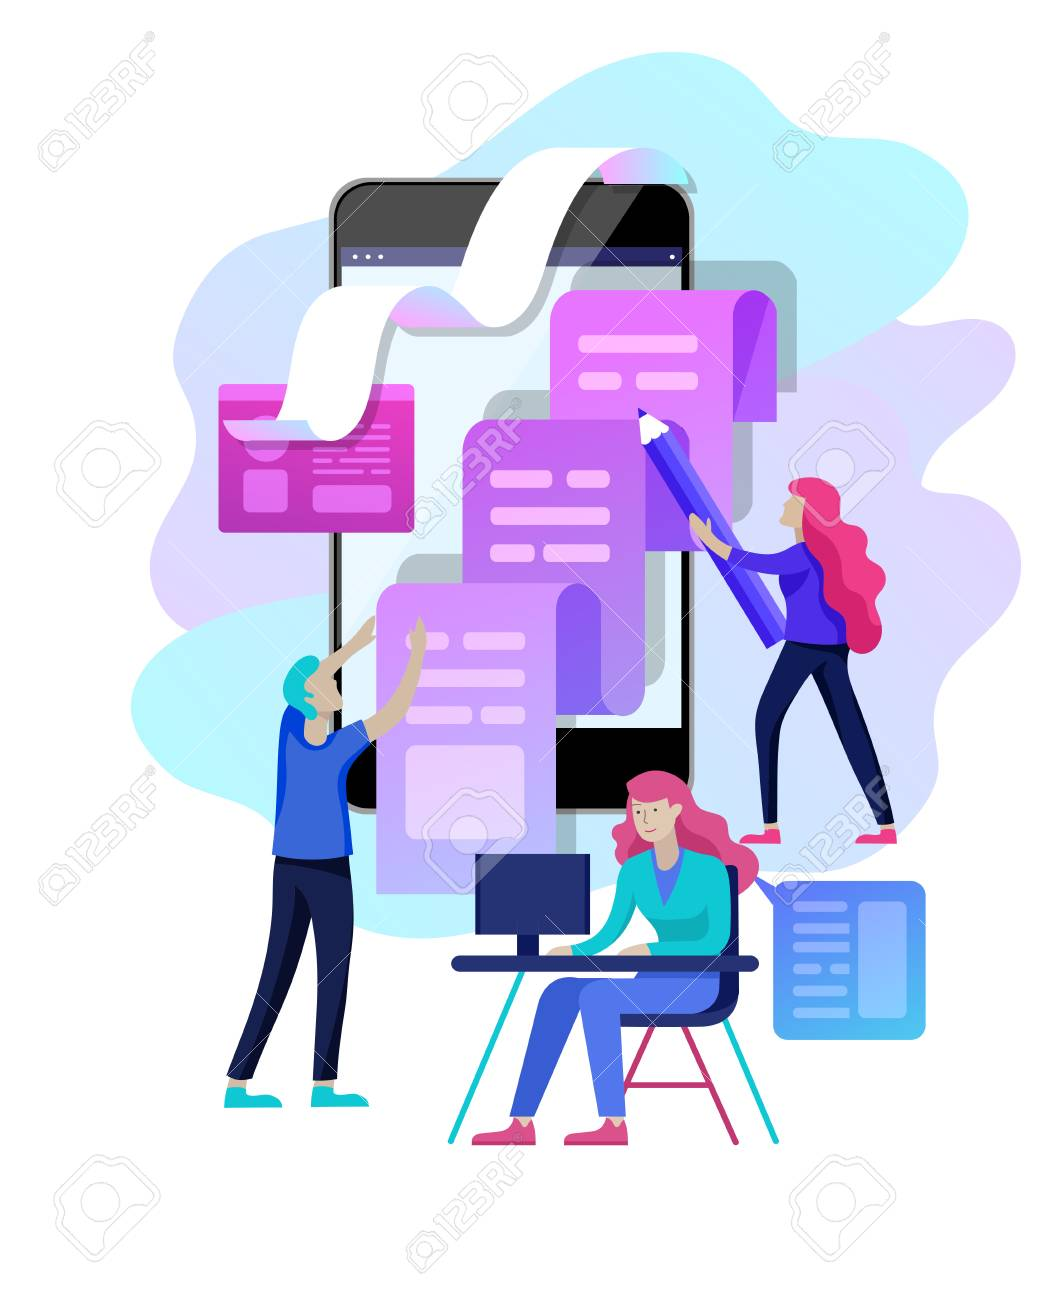 Concept vector illustration of business Blogging, people and education technology. Vector illustration news, copywriting, seminars, tutorial, creative writing, content management for web page, banner presentation, social media documents - 126757425